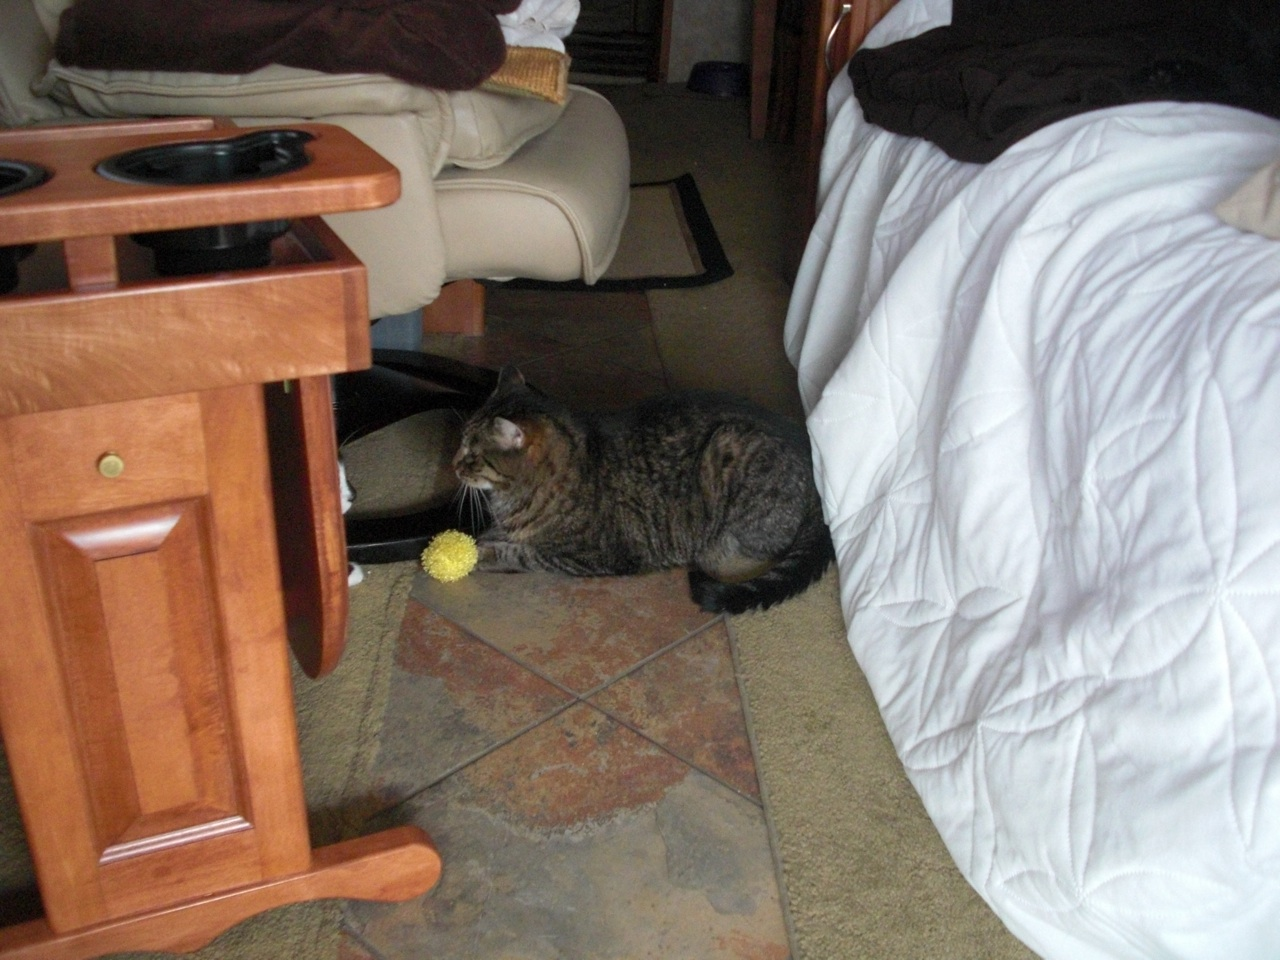 Whisper Laying In Middle Of Hallway, With His Ball, While We're Traveling Down The Road.  BK's Nose Is Right In Front Of Whisper.